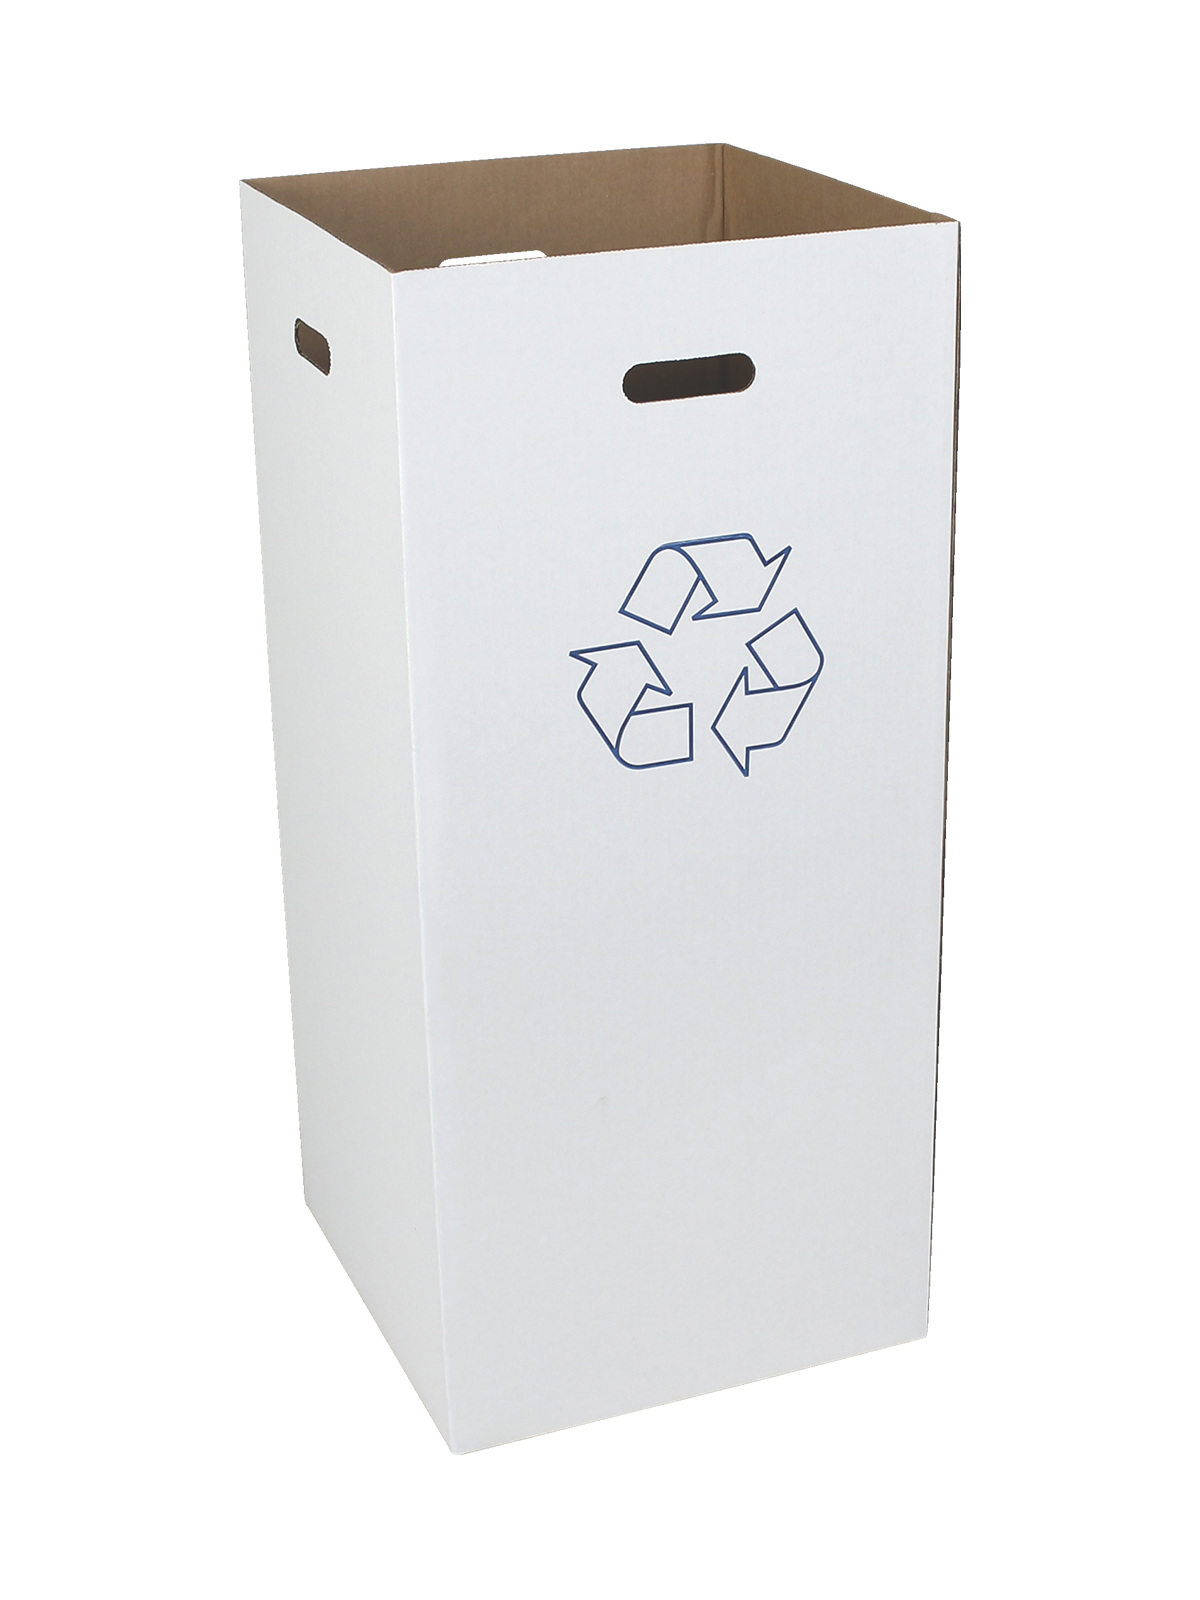 CORRUGATED RECYCLING BIN 10 PACK - 28 GALLON